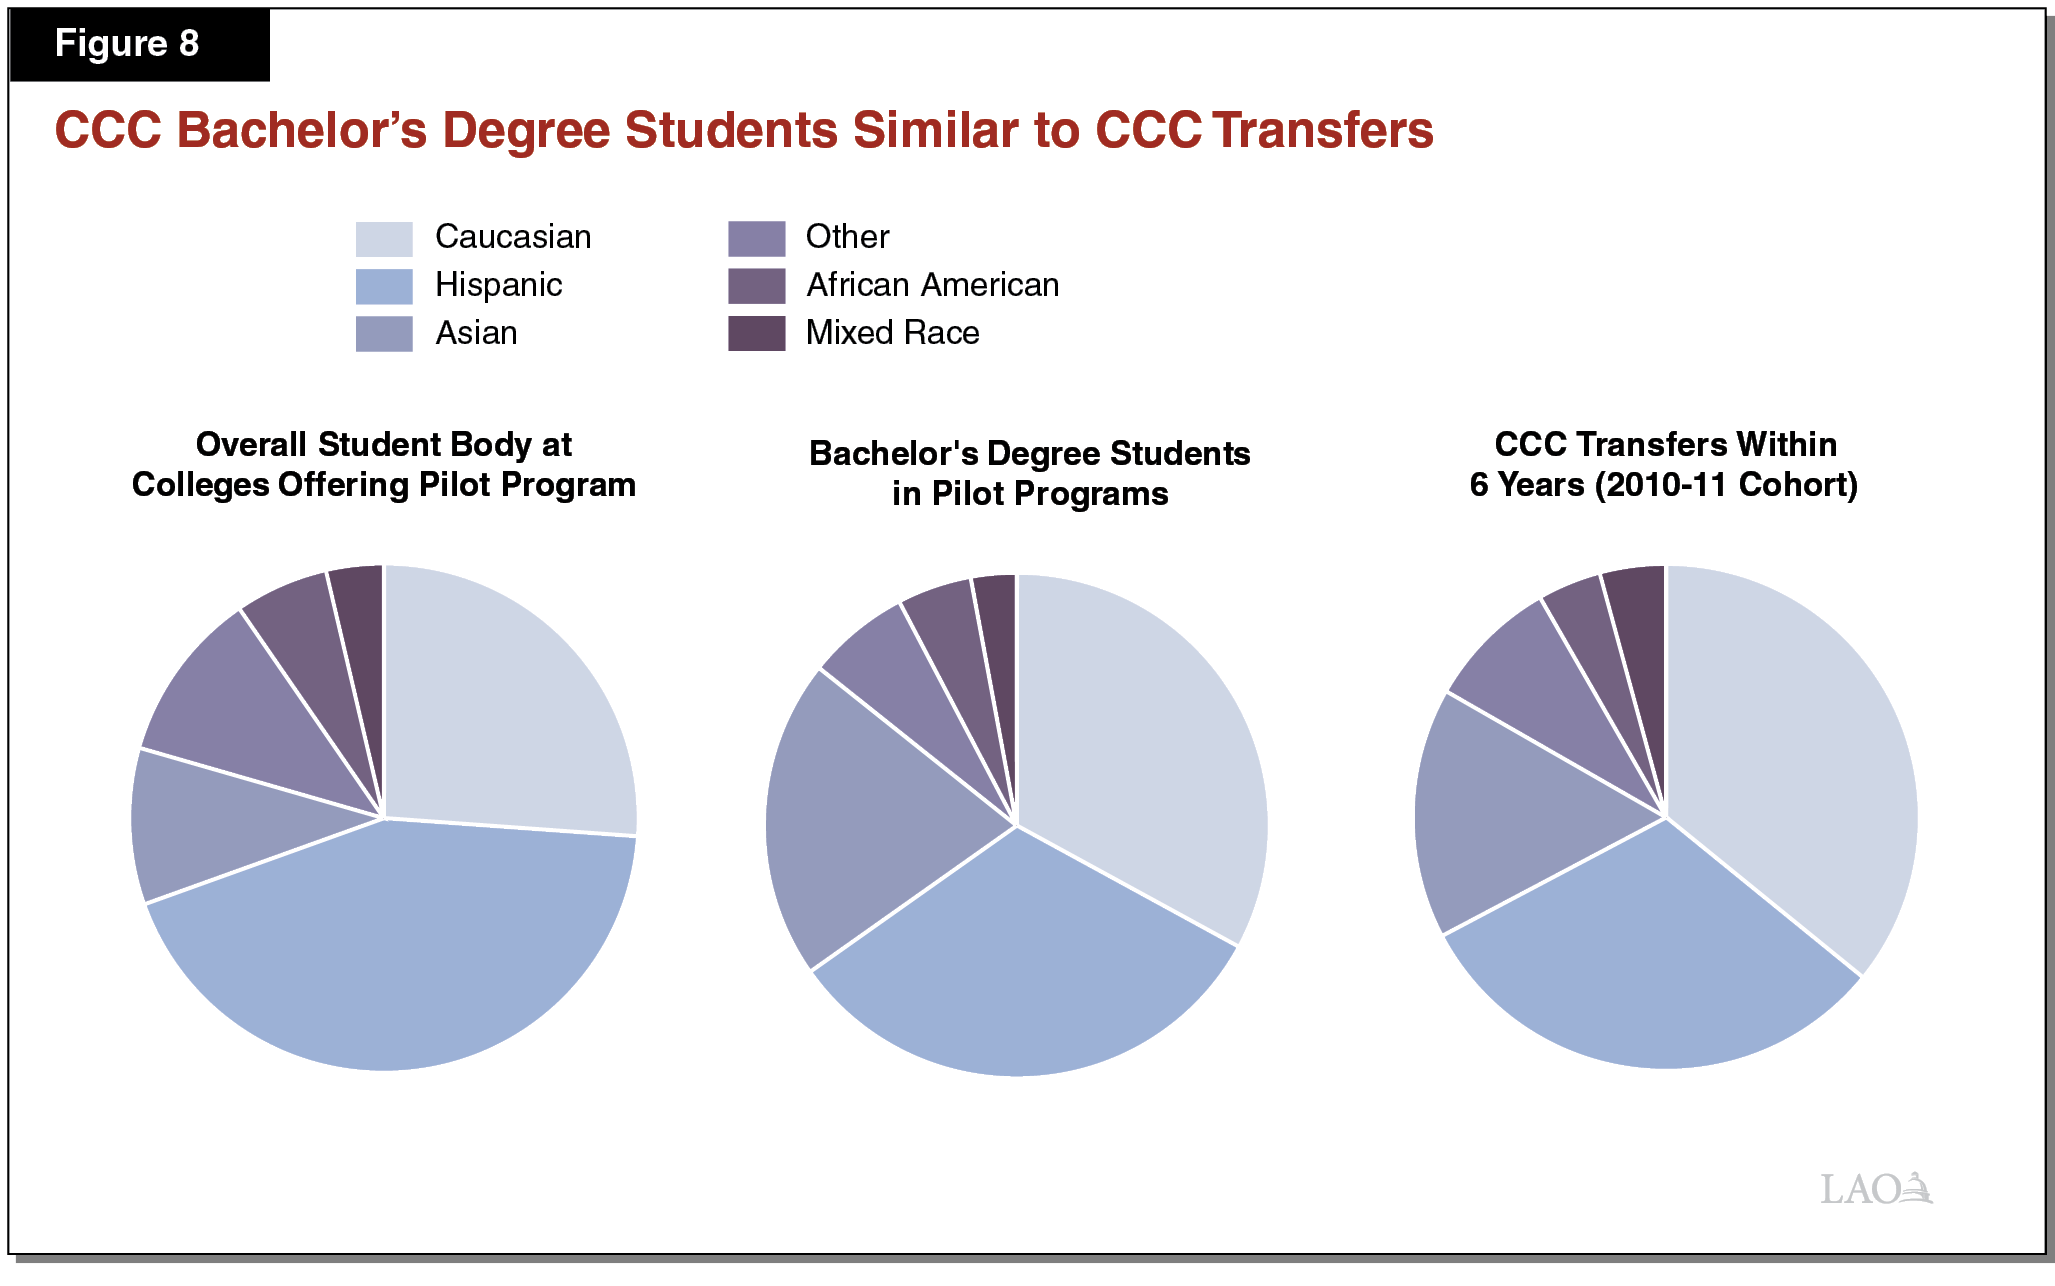 Figure 8 CCC Bachelor's Degree Student Similar